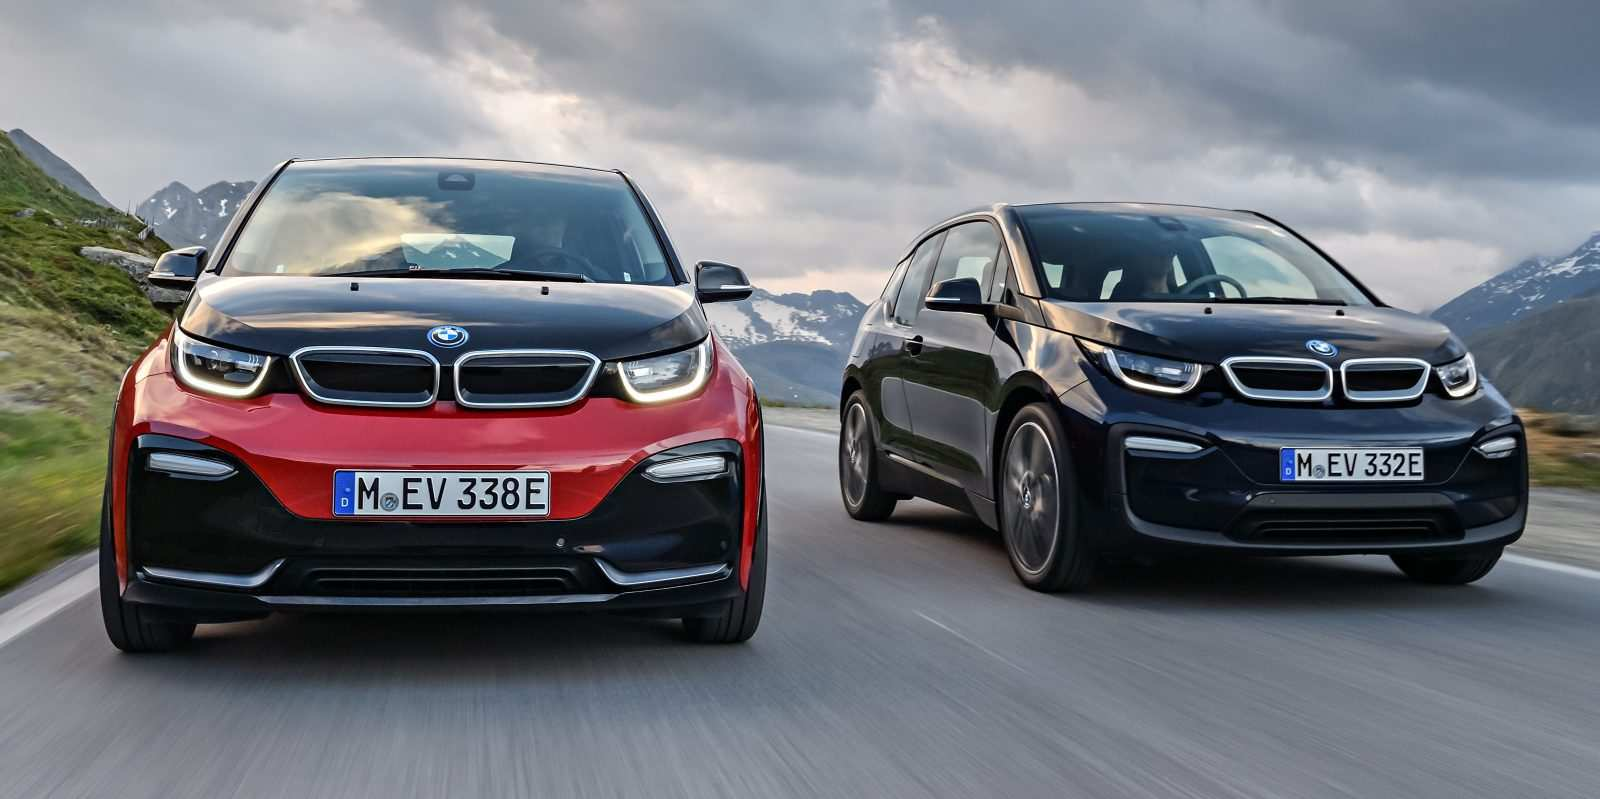 67 Concept of 2020 Bmw I3 Rumors by 2020 Bmw I3